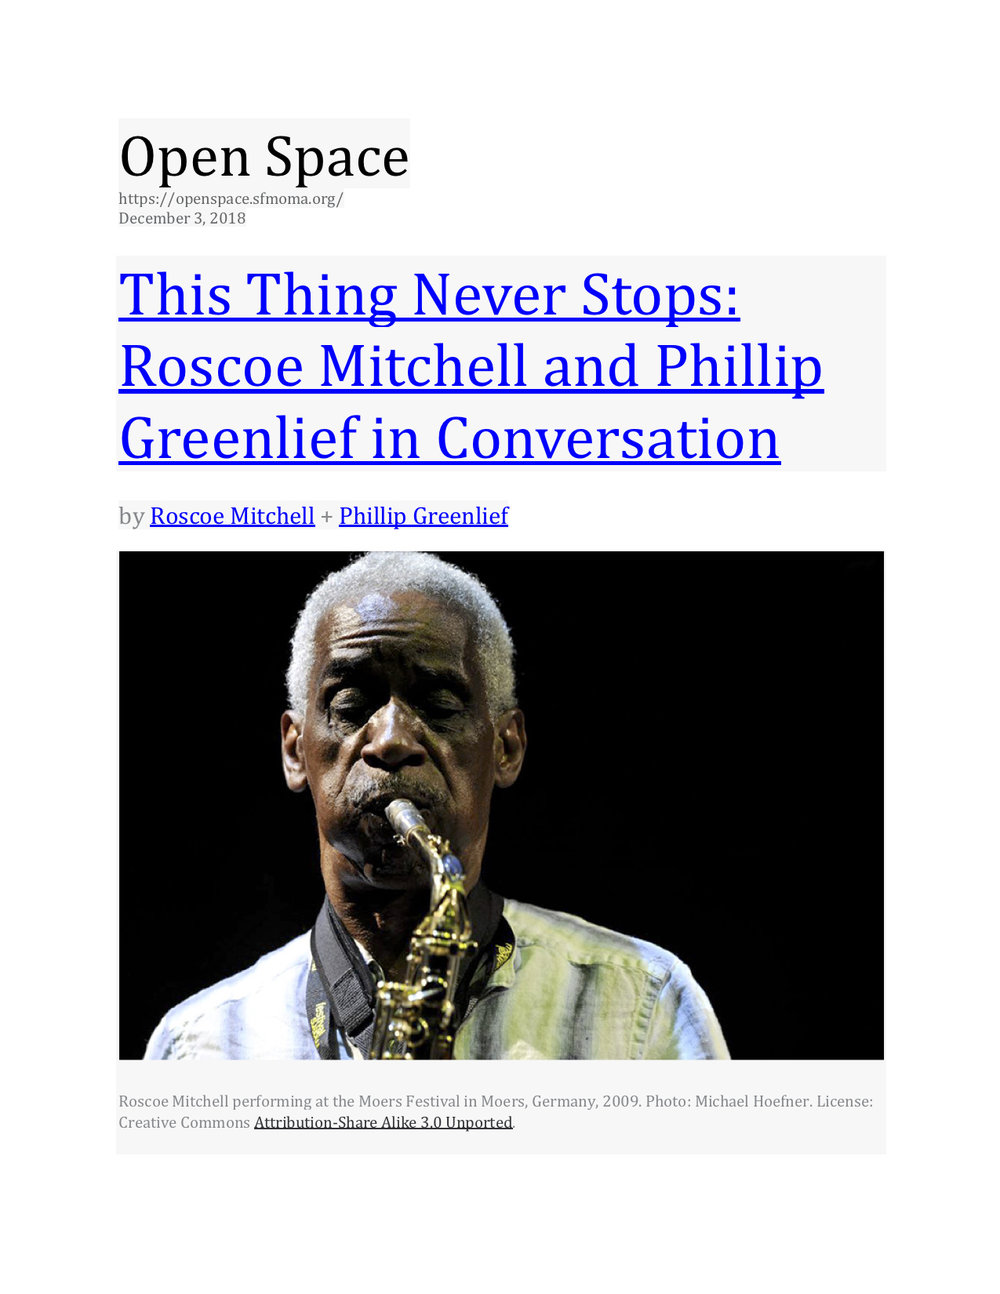 Open Space Roscoe Mitchell 1.jpg